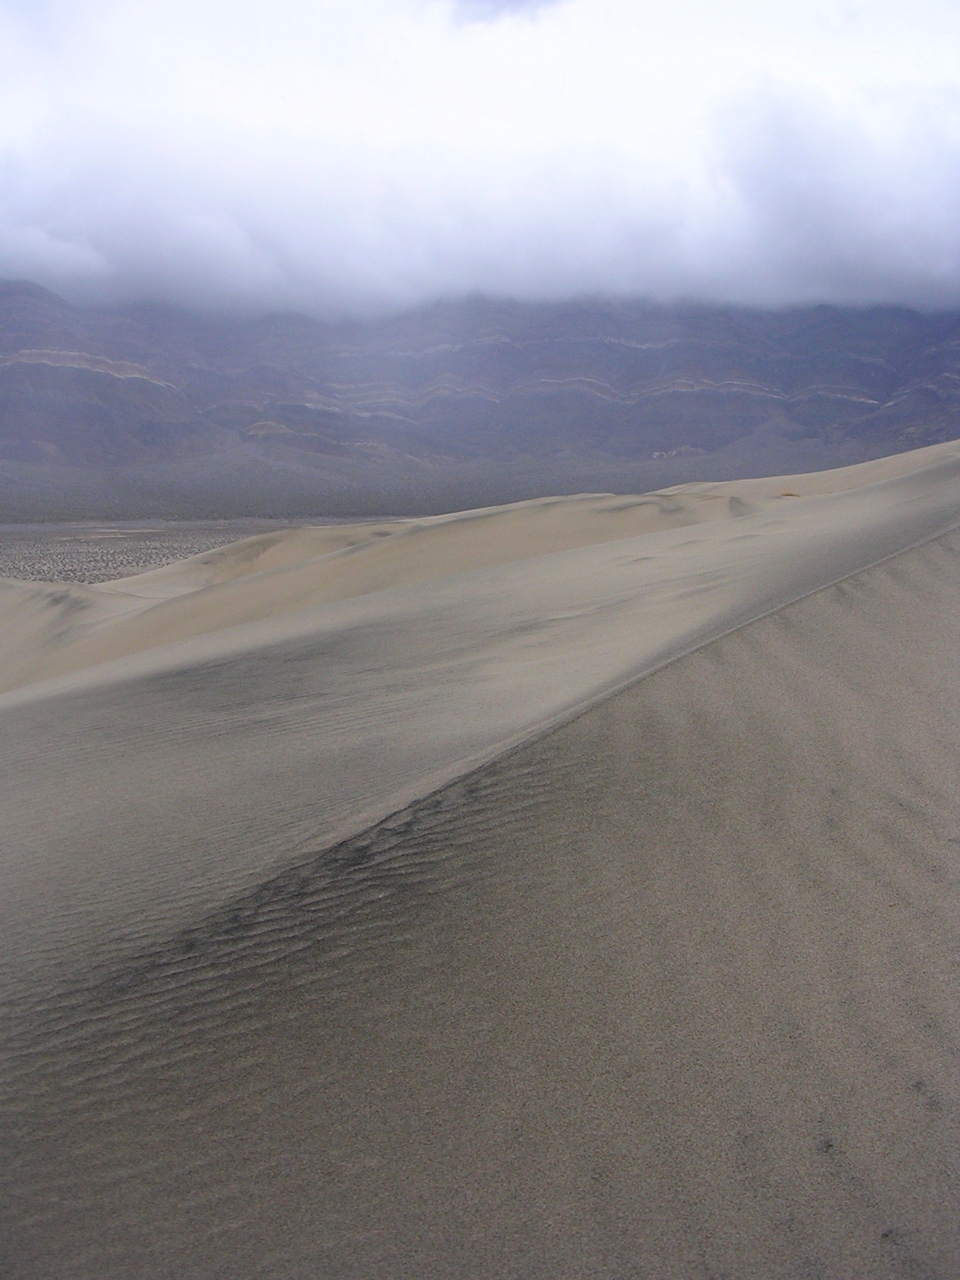 Crest of a dune in the Eureka Dunes, Death Valley NP.